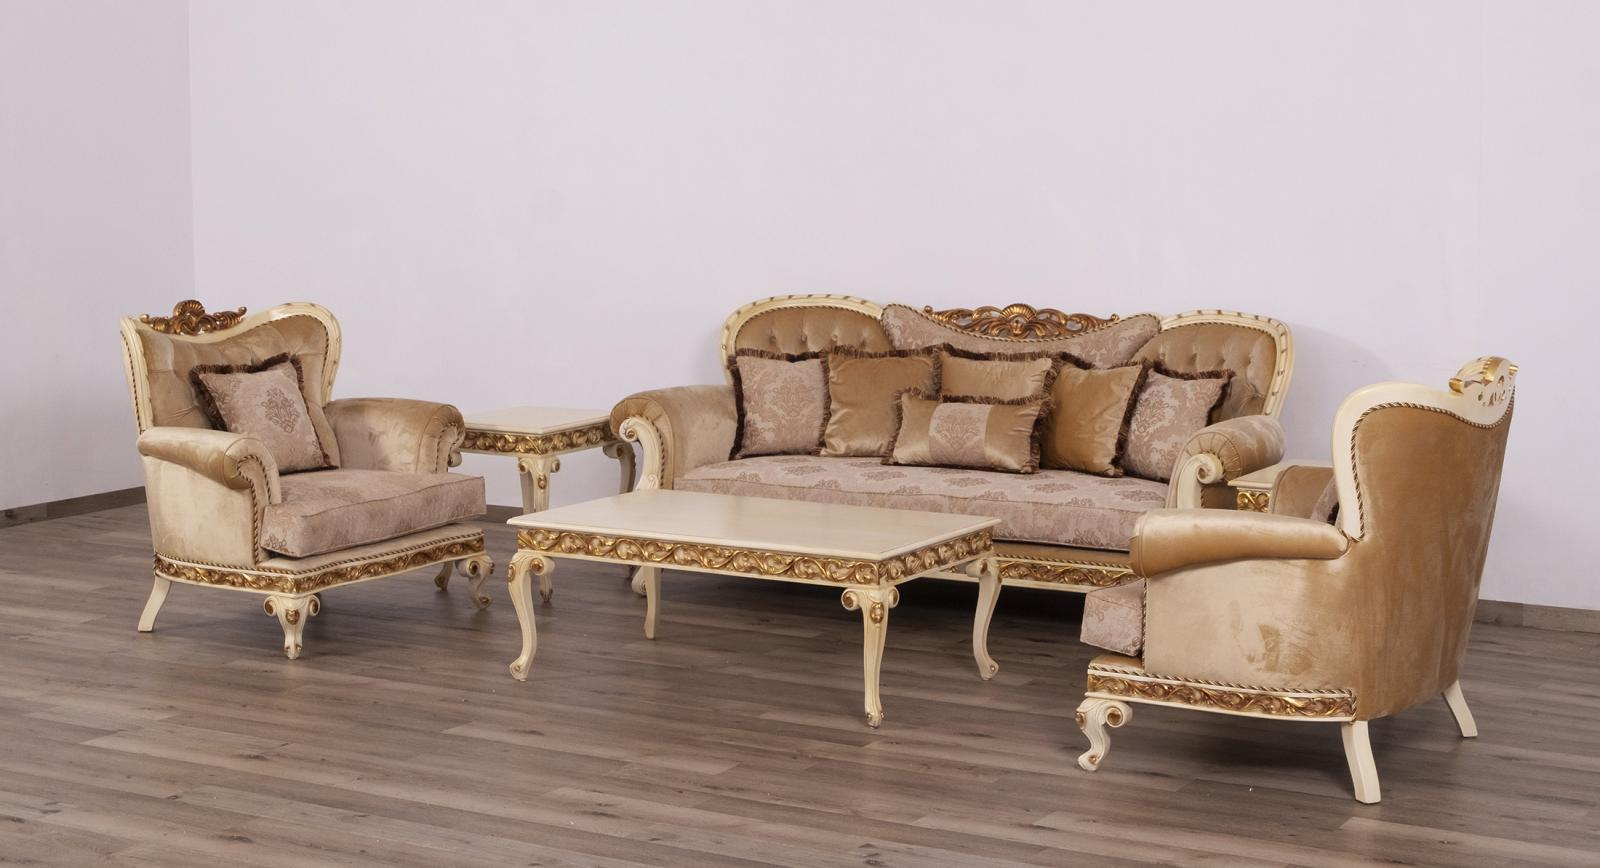 Classic  Traditional Gold  Sand   Beige Wood  Solid Hardwood and Fabric Sofa Set EUROPEAN FURNITURE 40017-S-Set-3